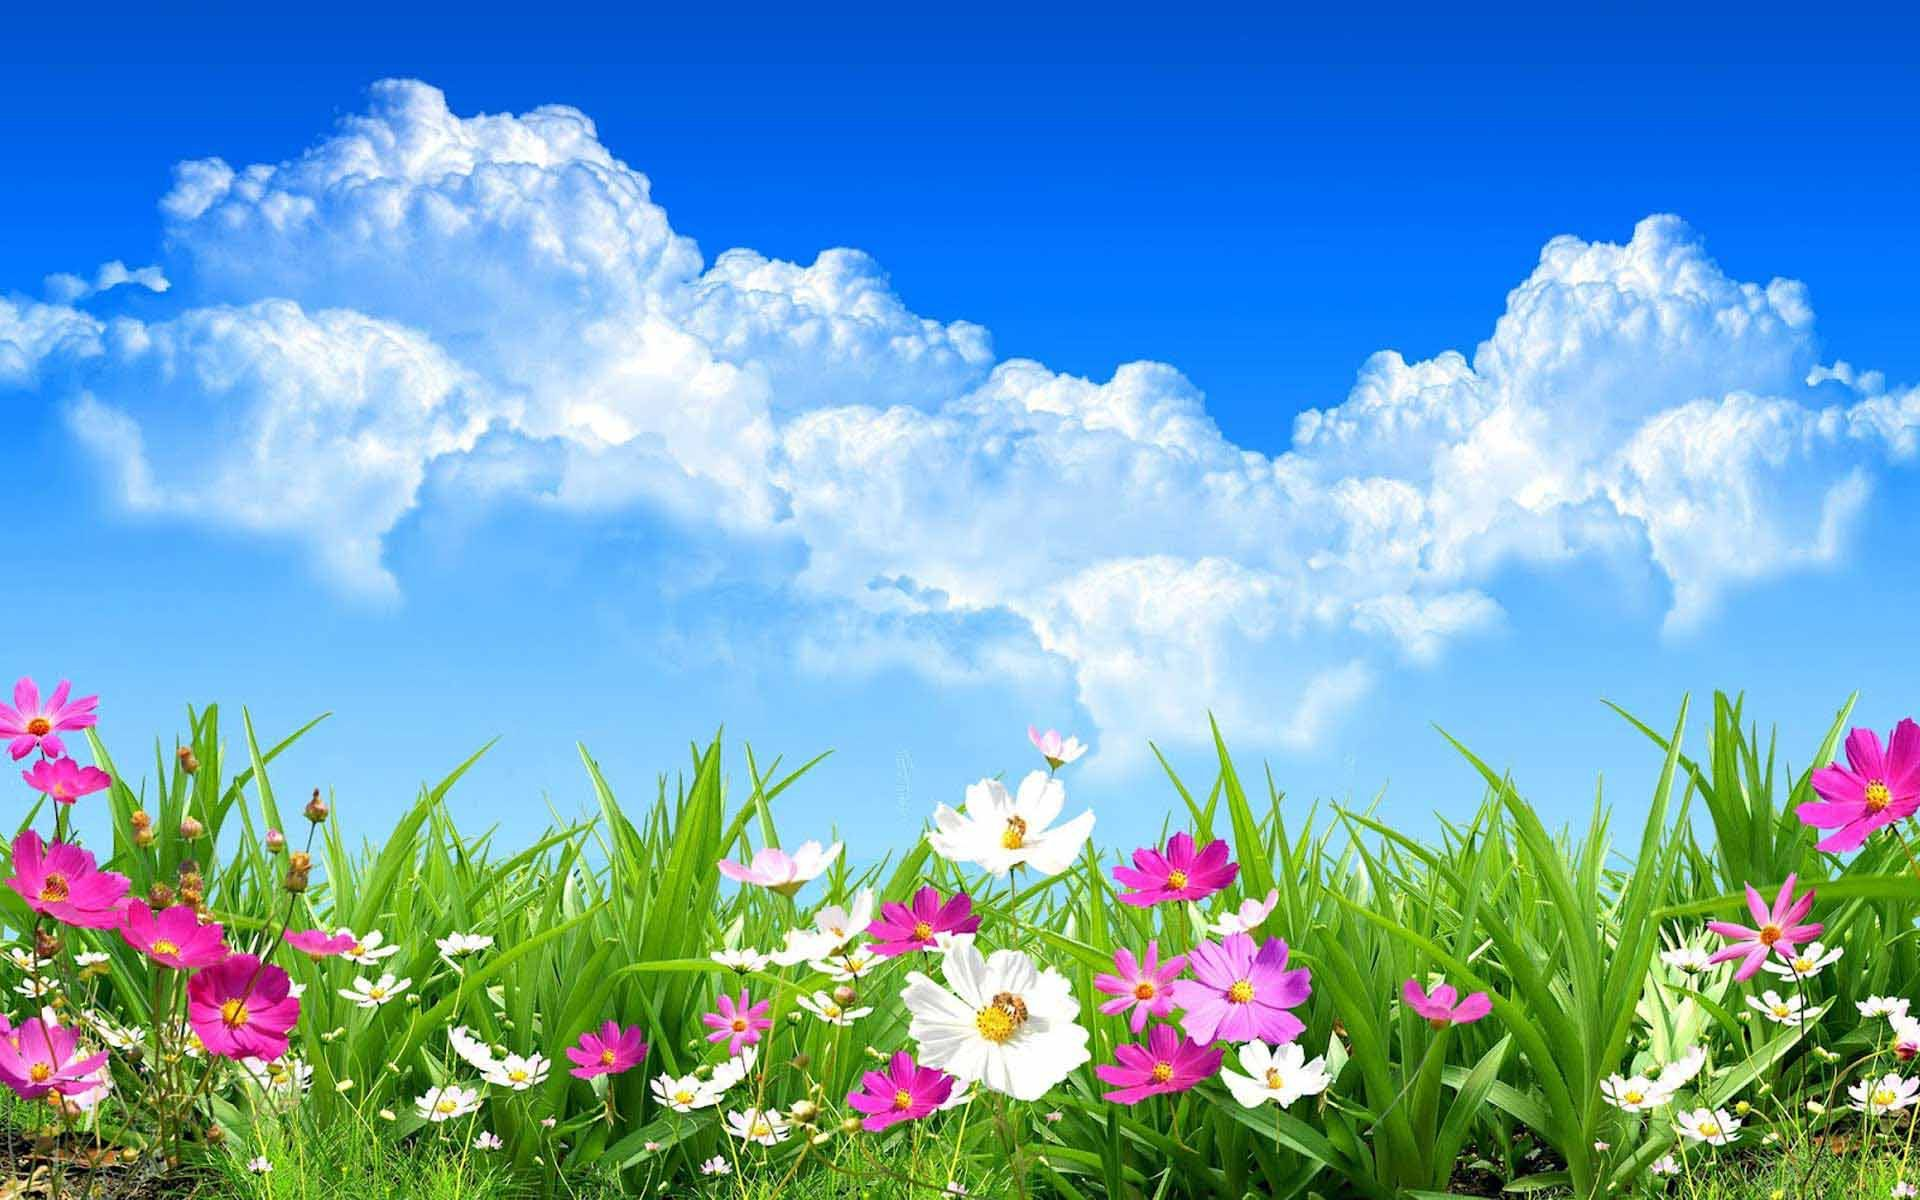 Spring flowers wallpaper free stock photos download (, Free 1920x1200